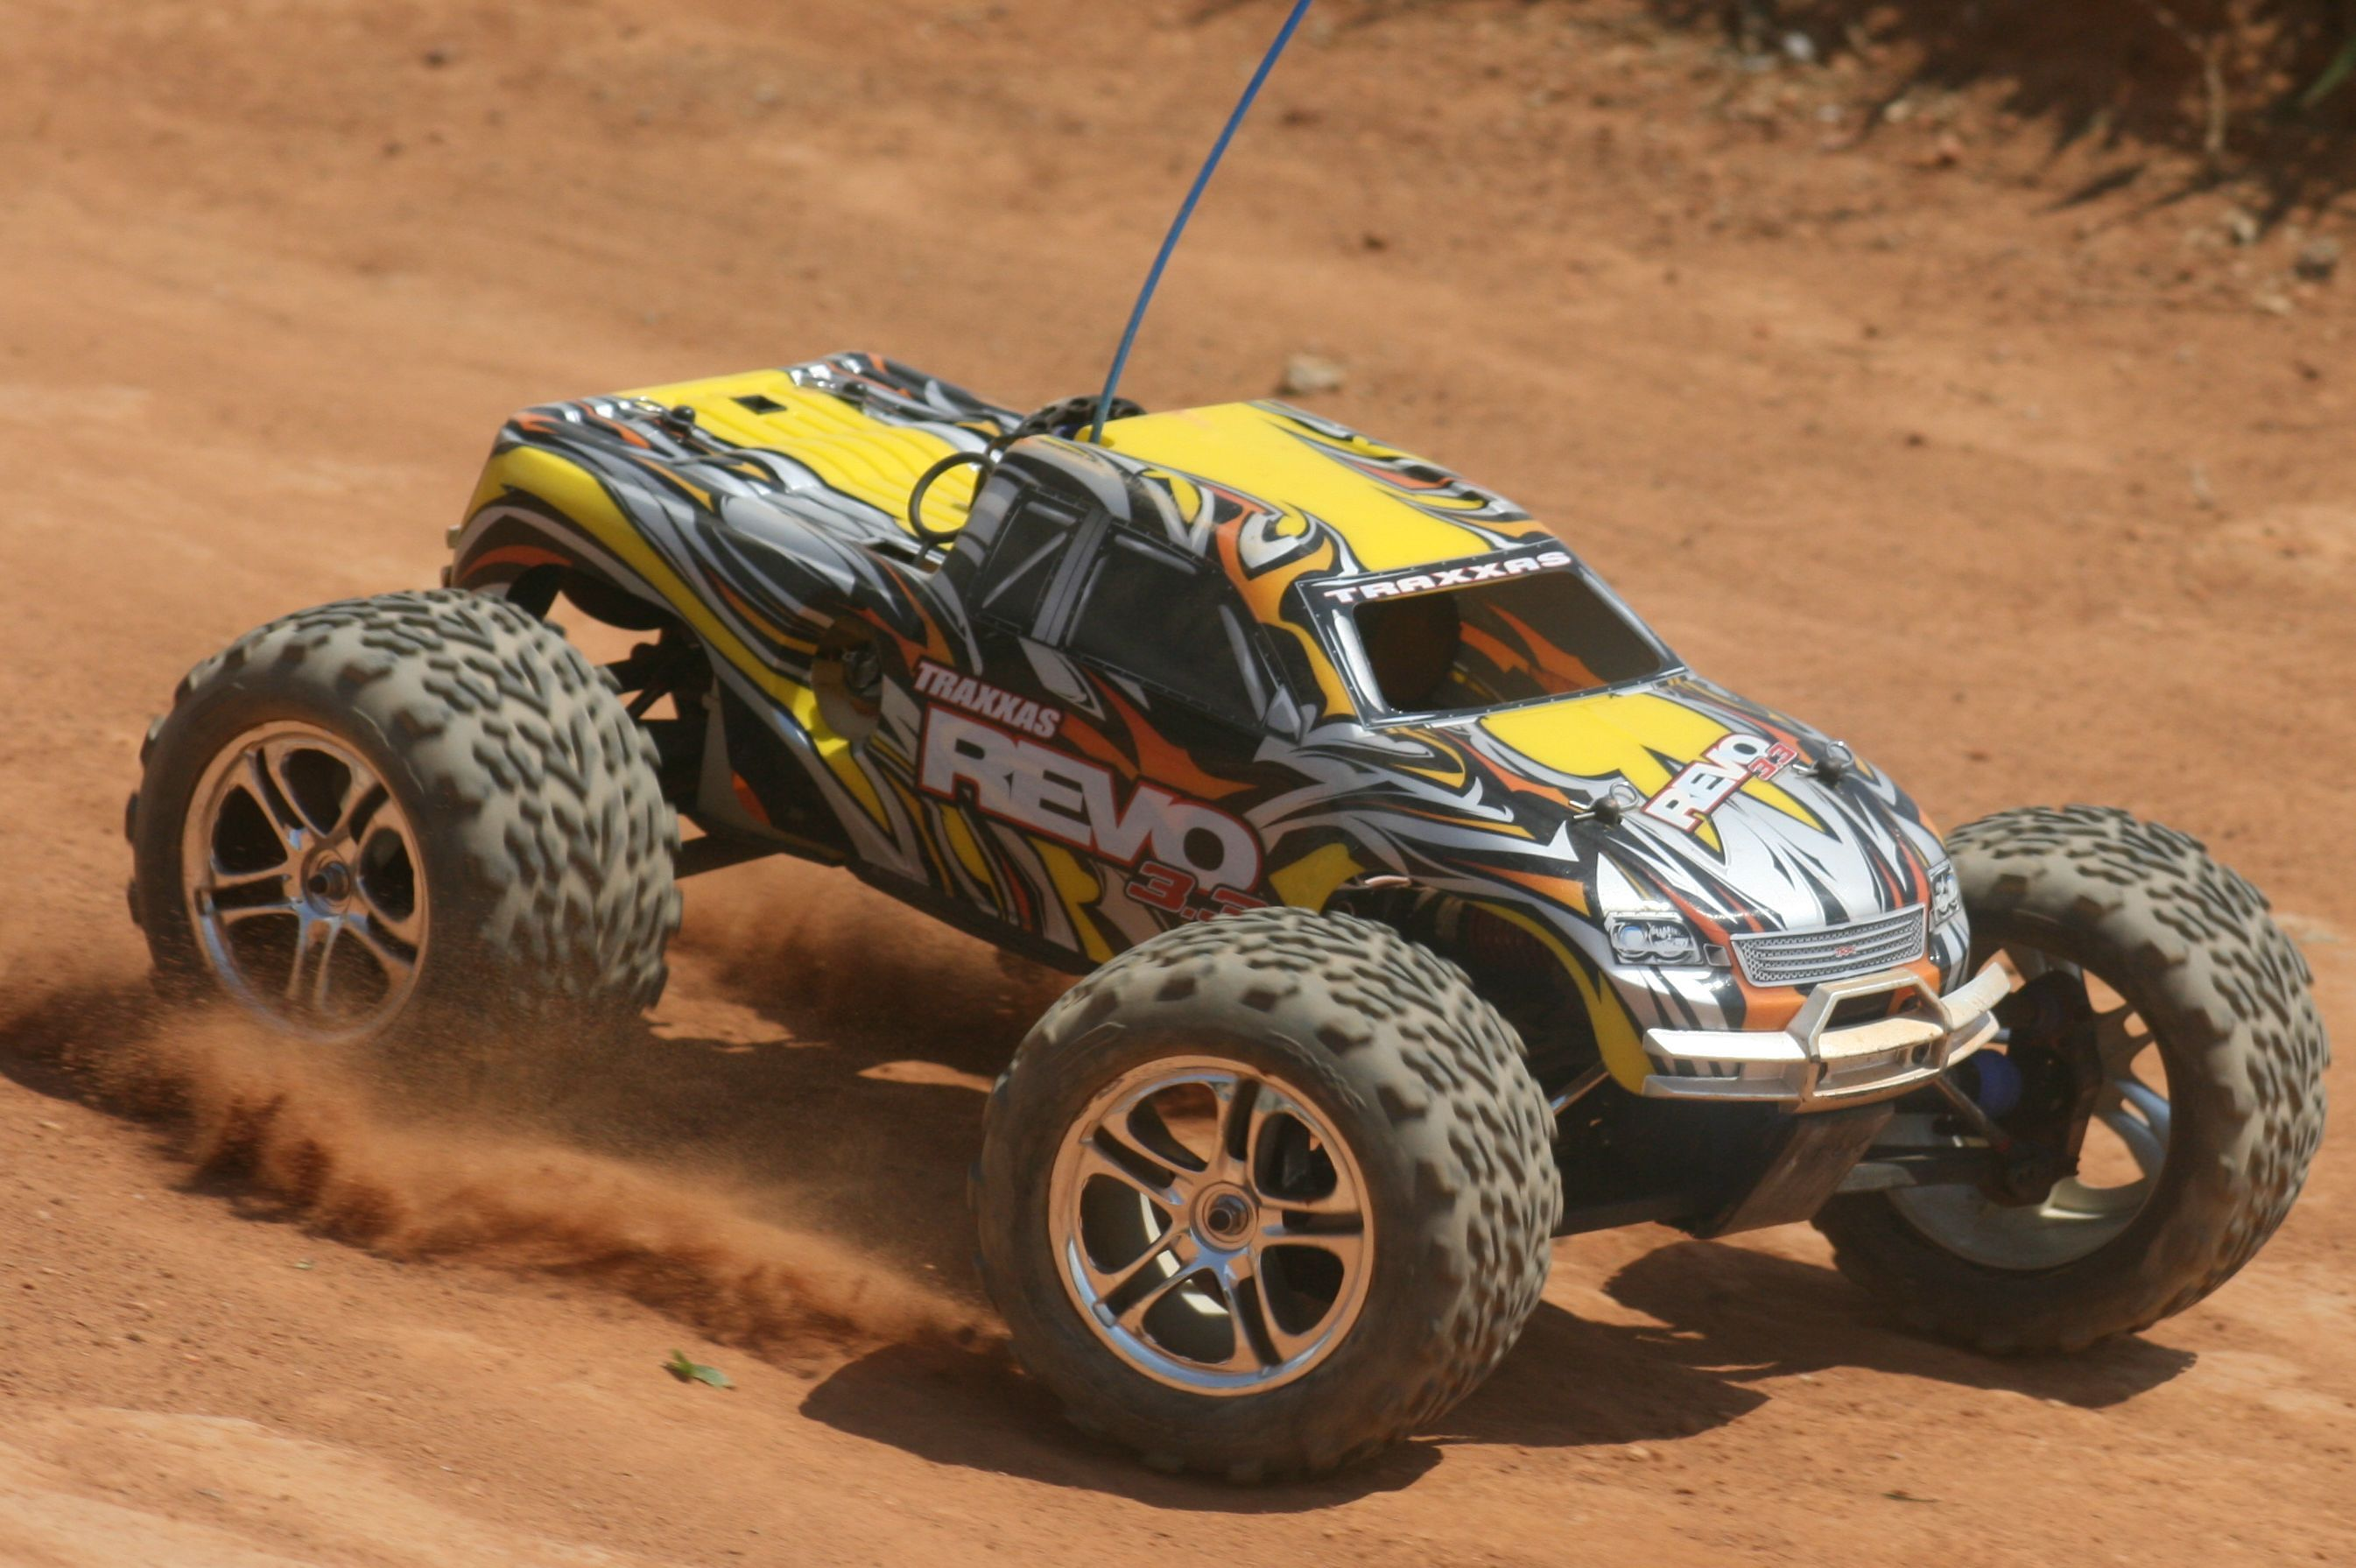 Off Road Rc Trucks I Would Really Say That This Is Tops On My List When It Comes To This Fun Stuffs Radiocontrol Aficiones Radio